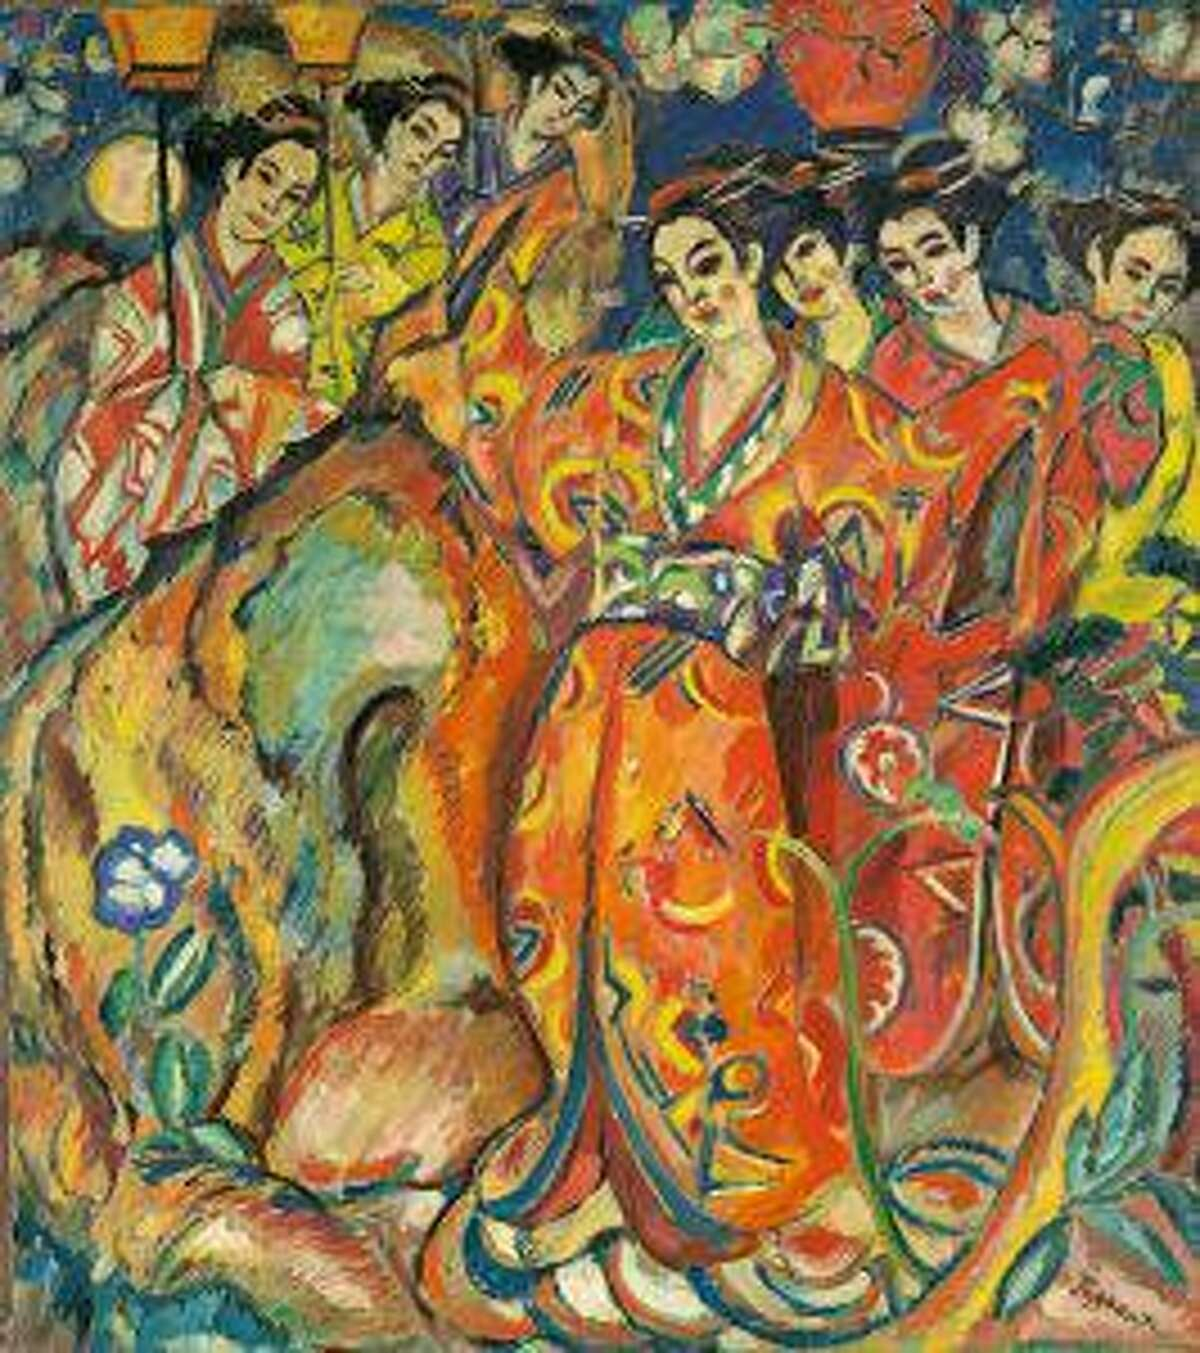 Georg Tappert, Geisha-Revue, 1911/13, Oil on canvas. The Ella Gallup Sumner and Mary Catlin Sumner Collection Fund. © 2021 Artists Rights Society (ARS), New York / VG Bild- Kunst, Bonn